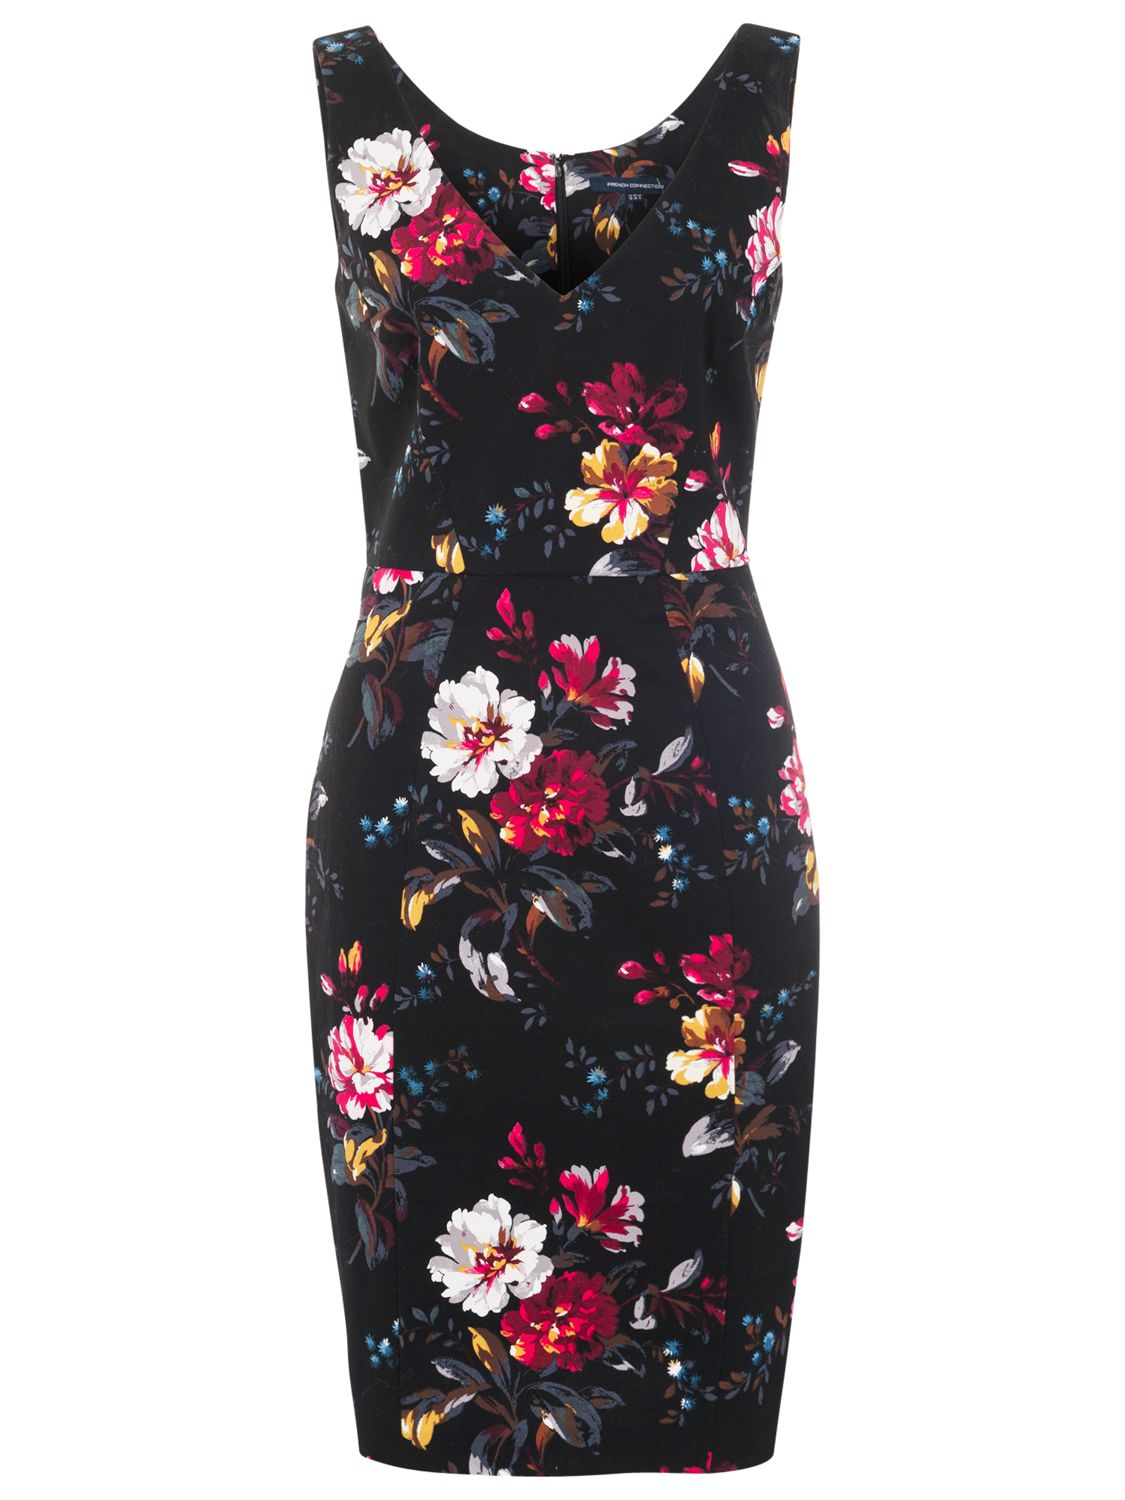 french connection gardini floral print dress black/multi, french, connection, gardini, floral, print, dress, black/multi, french connection, 8|6, clearance, womenswear offers, womens dresses offers, women, womens dresses, special offers, 1745445